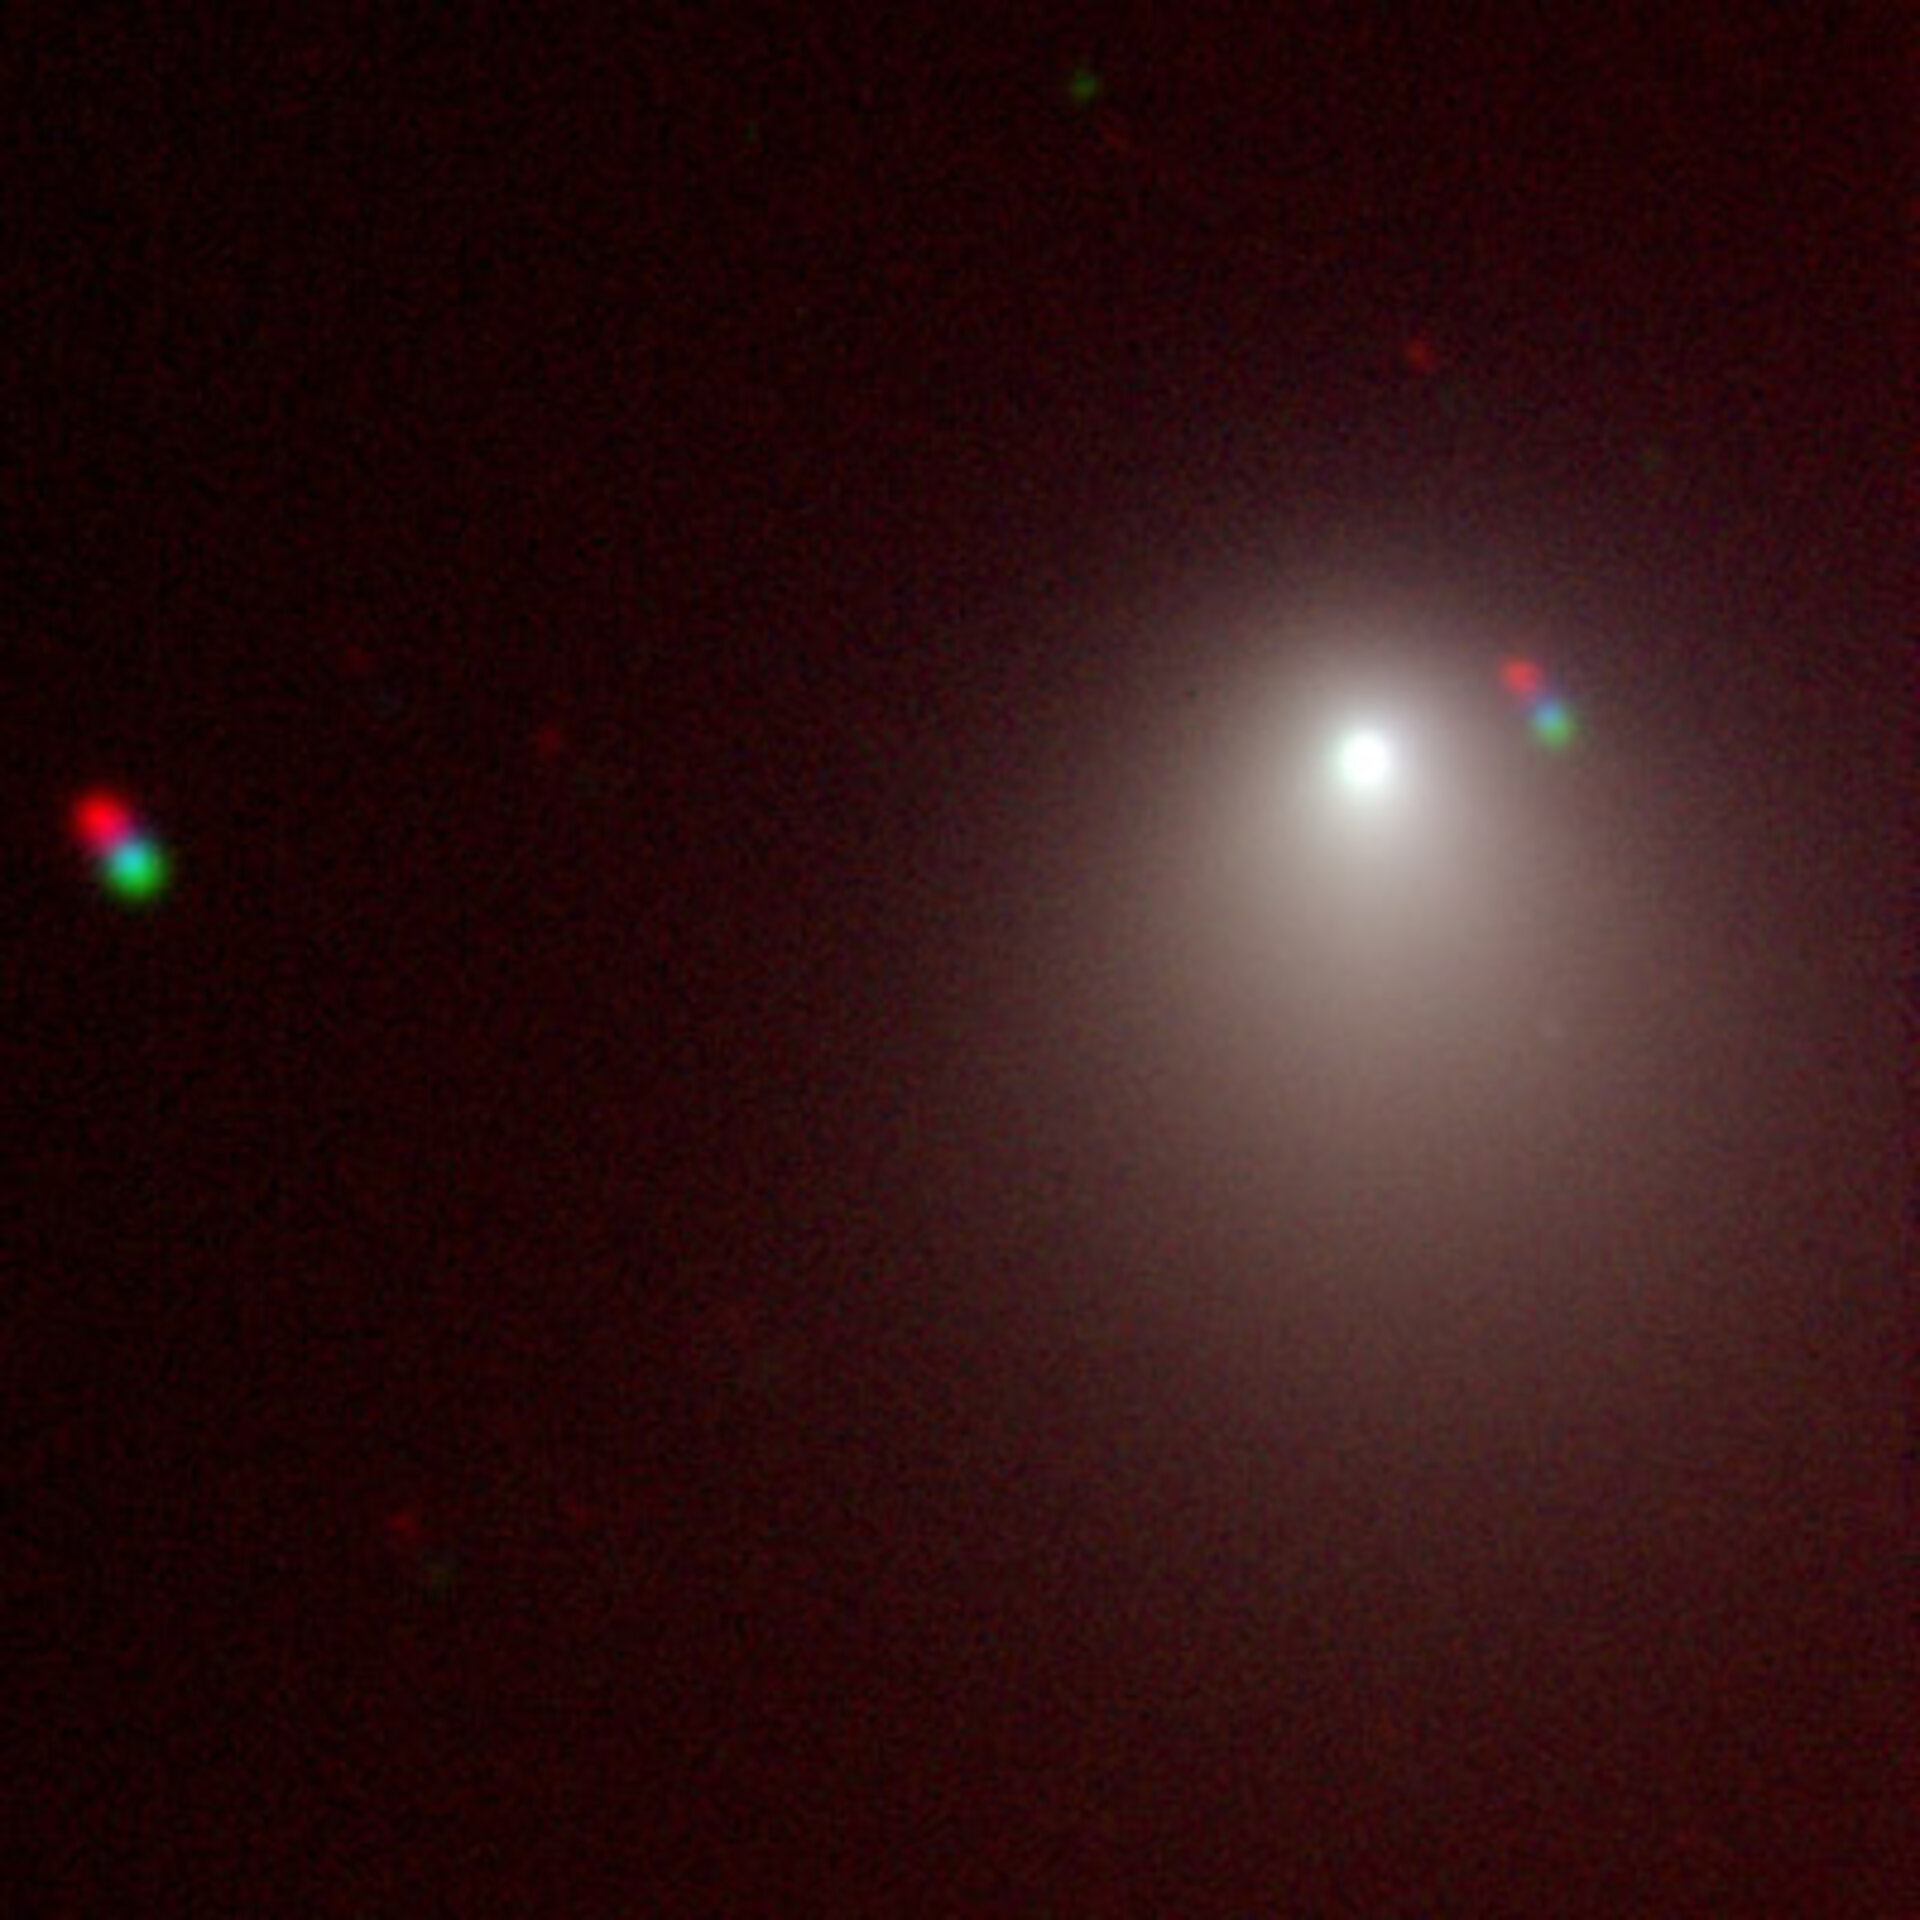 Comet 9P/Tempel 1 as seen by ESO telescope